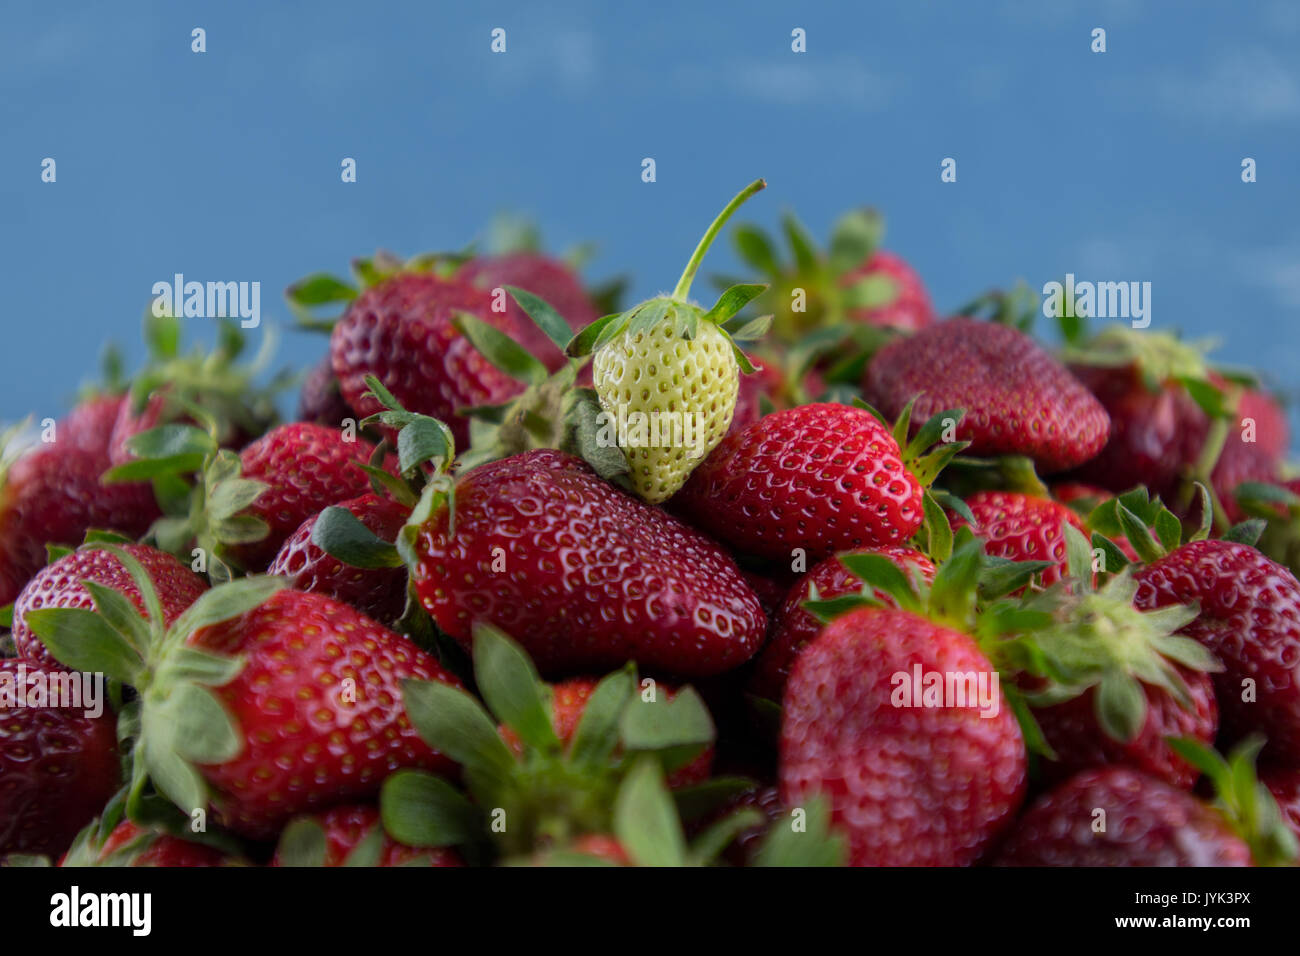 Green Strawberry Sits on Pile of Ripe Berries in front of blue background Stock Photo